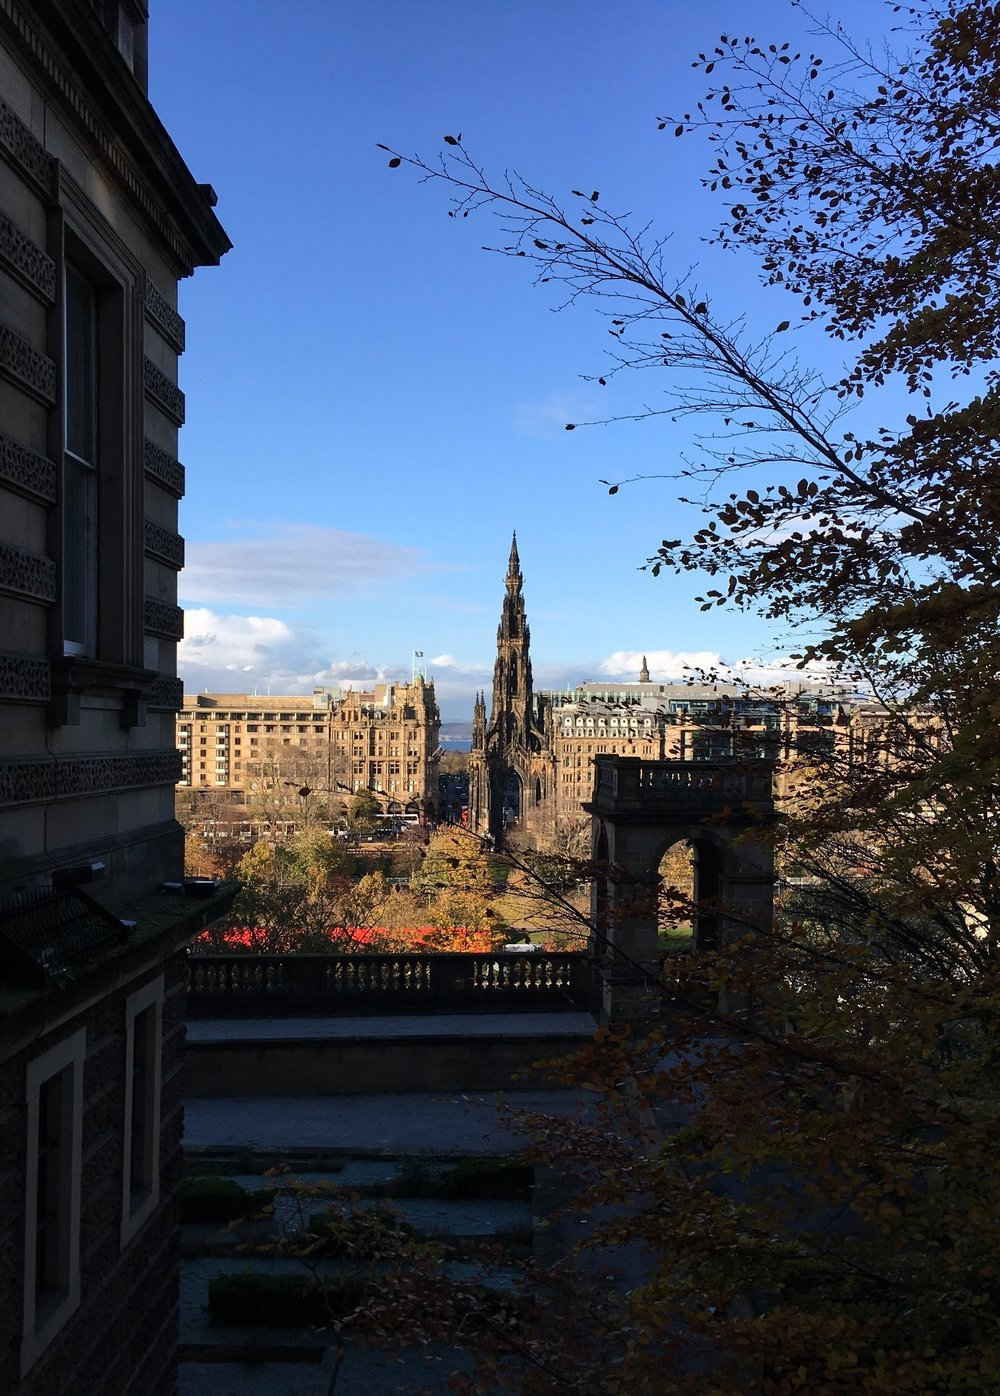 Looking down at the Scott Monument from some hilly terrain